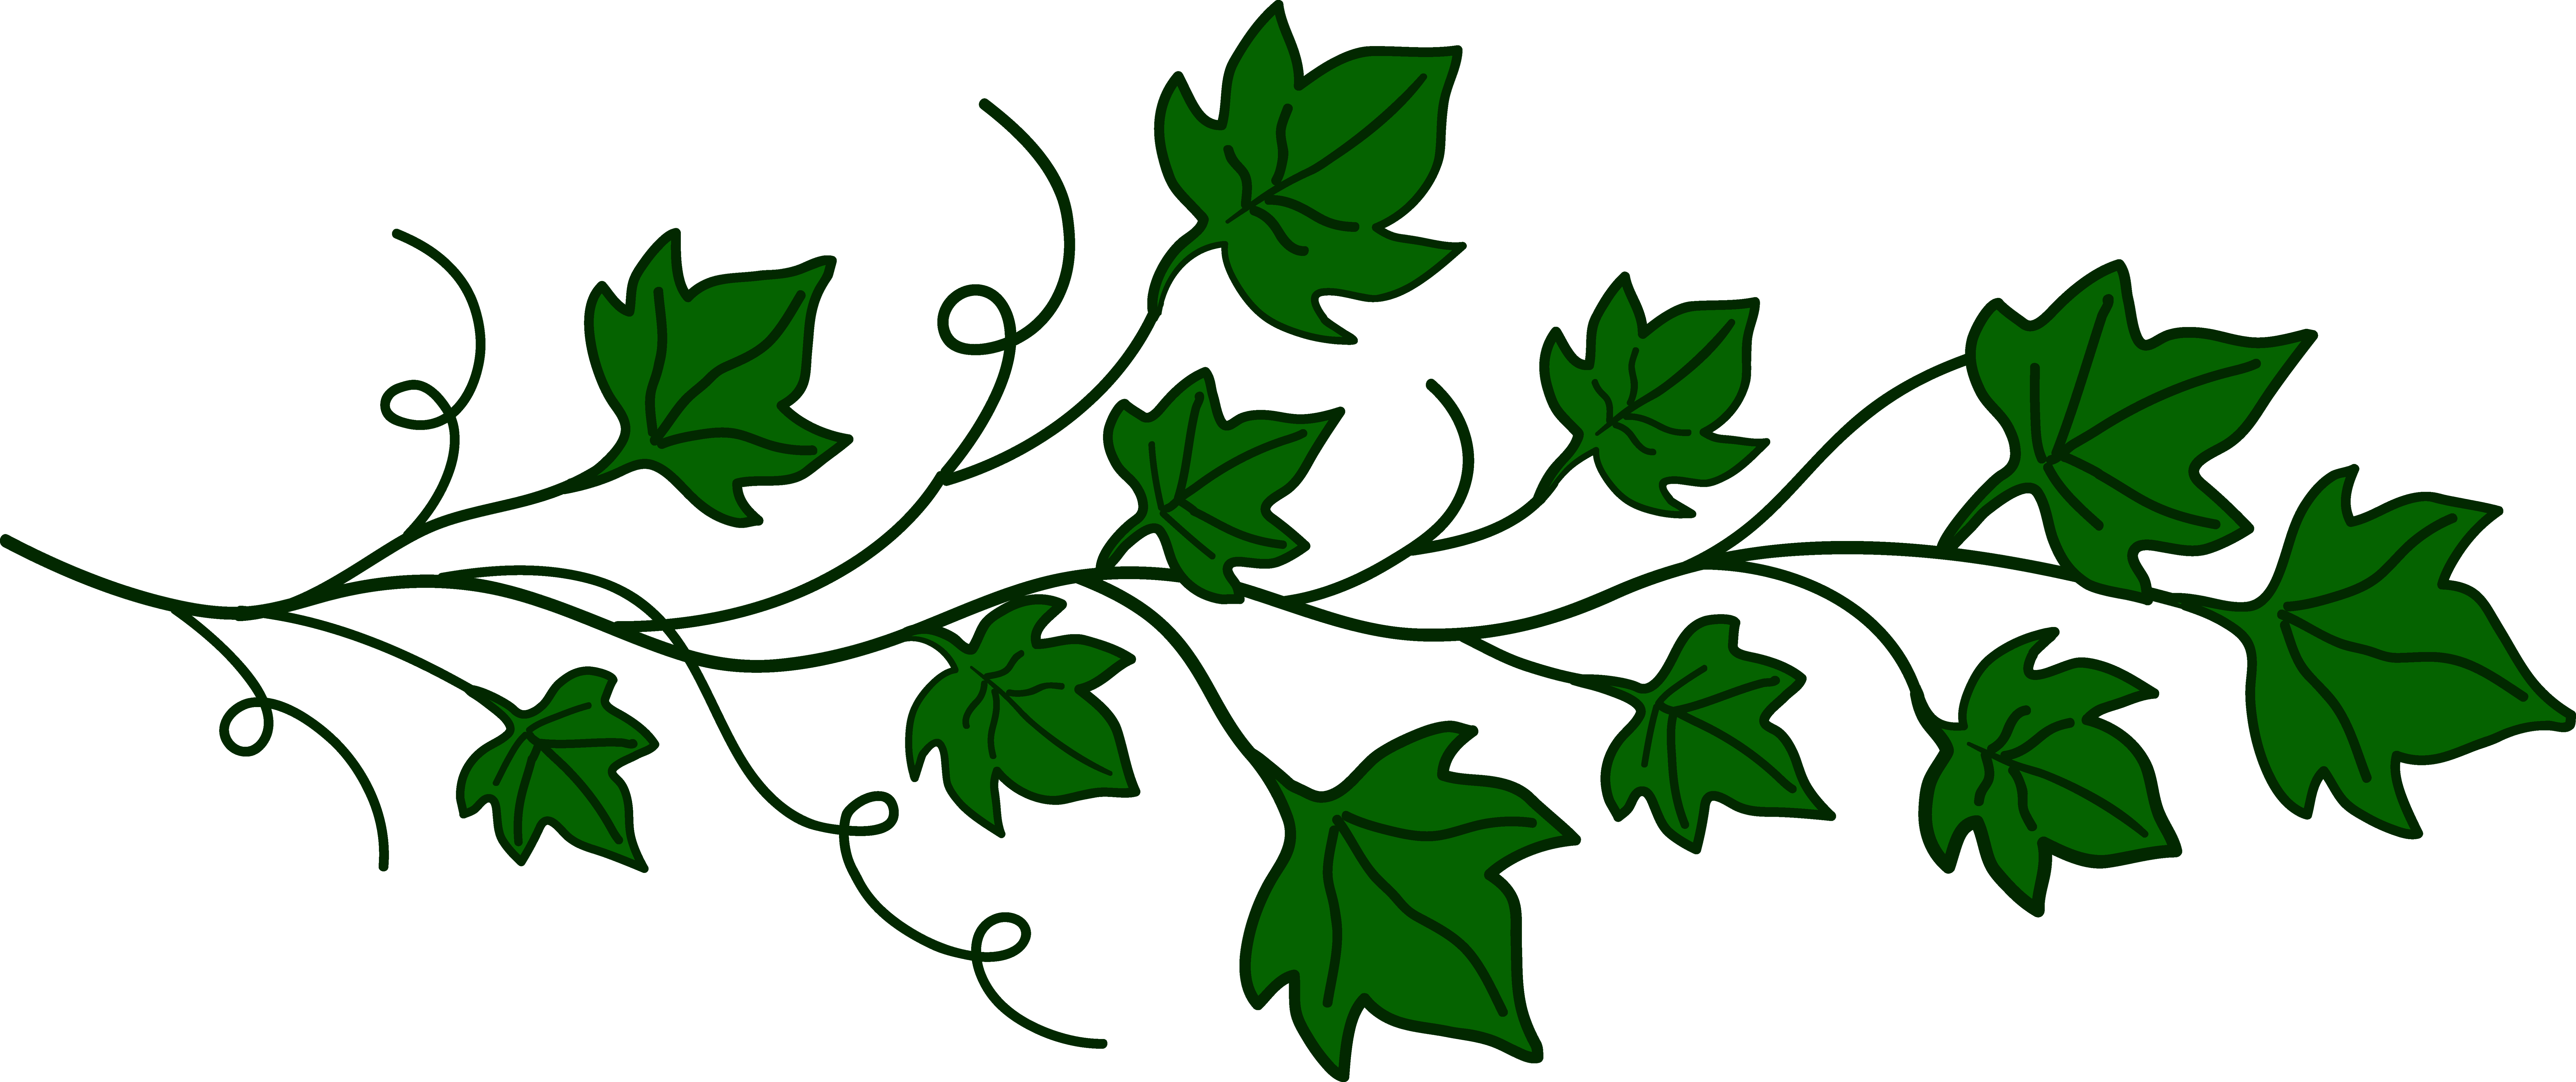 10061x4228 Vine Of Ivy Leaves